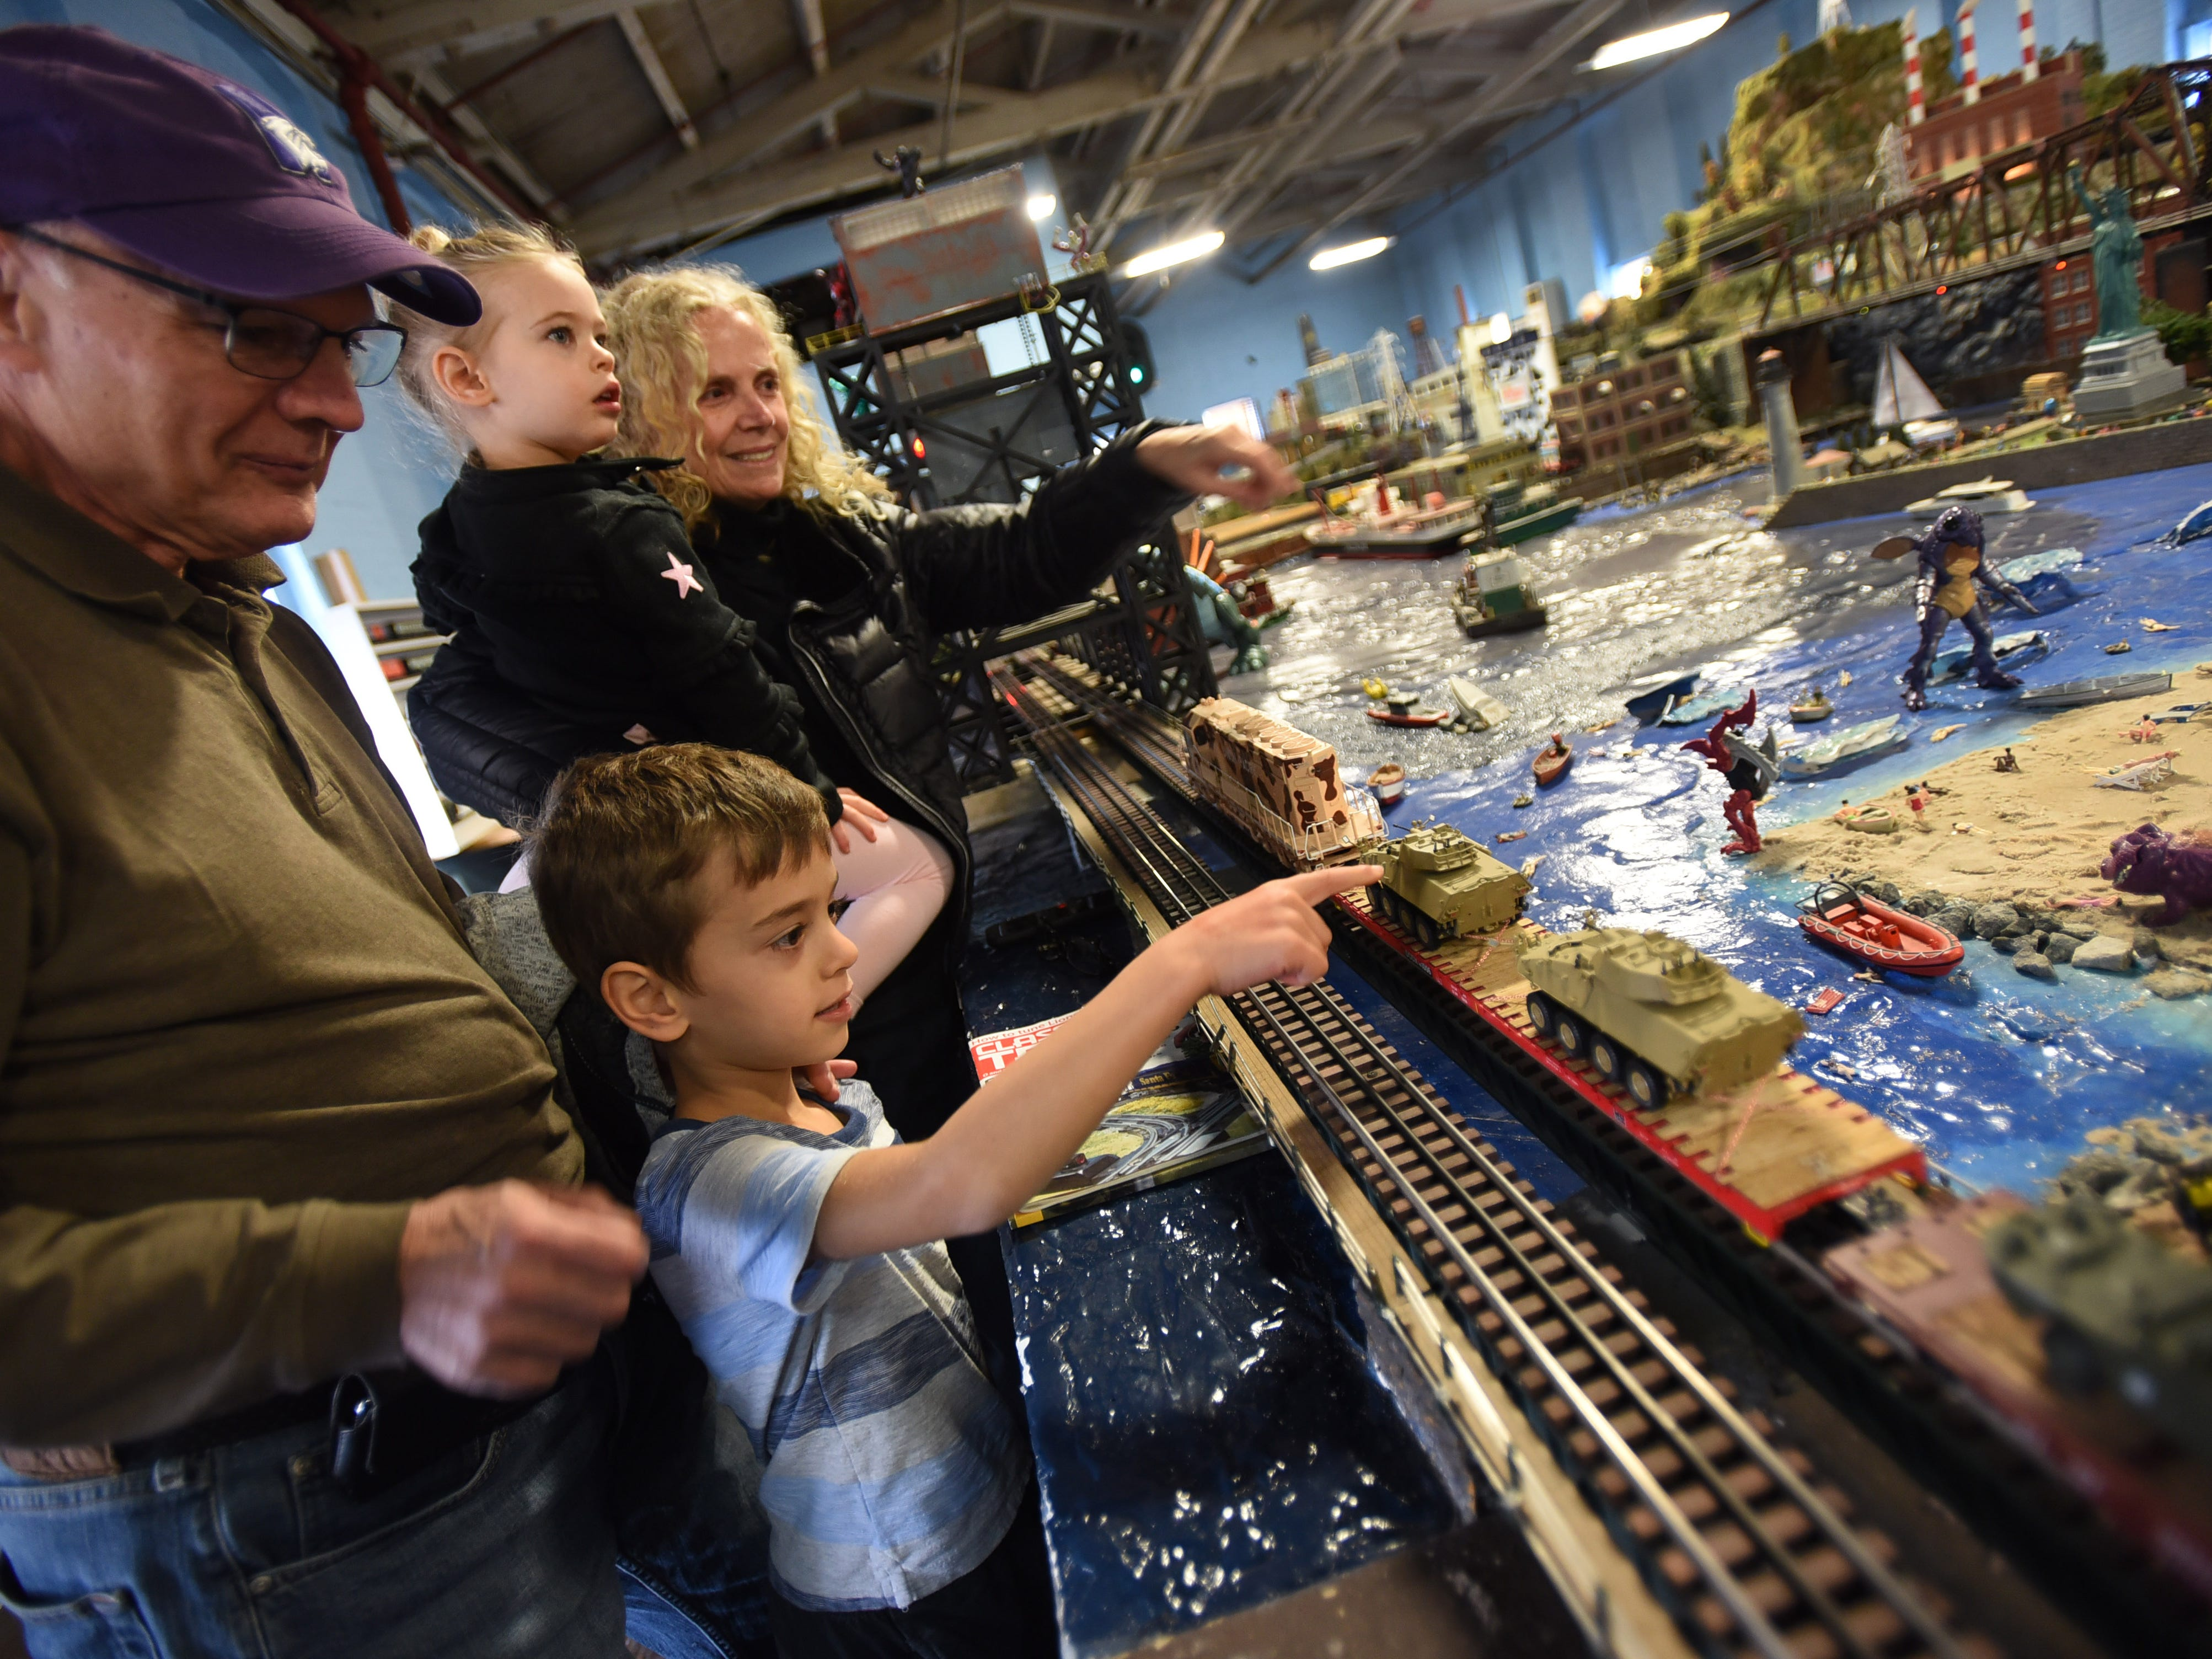 Vincent and Mary Ann Graziano of Wyckoff, accompany their grandchildren Evan (age 6) and Lia (age 3) as they enjoy watching as the NJ Hi-Railers hold periodic shows for the public at Silk City Station in Paterson on 10/28/18.